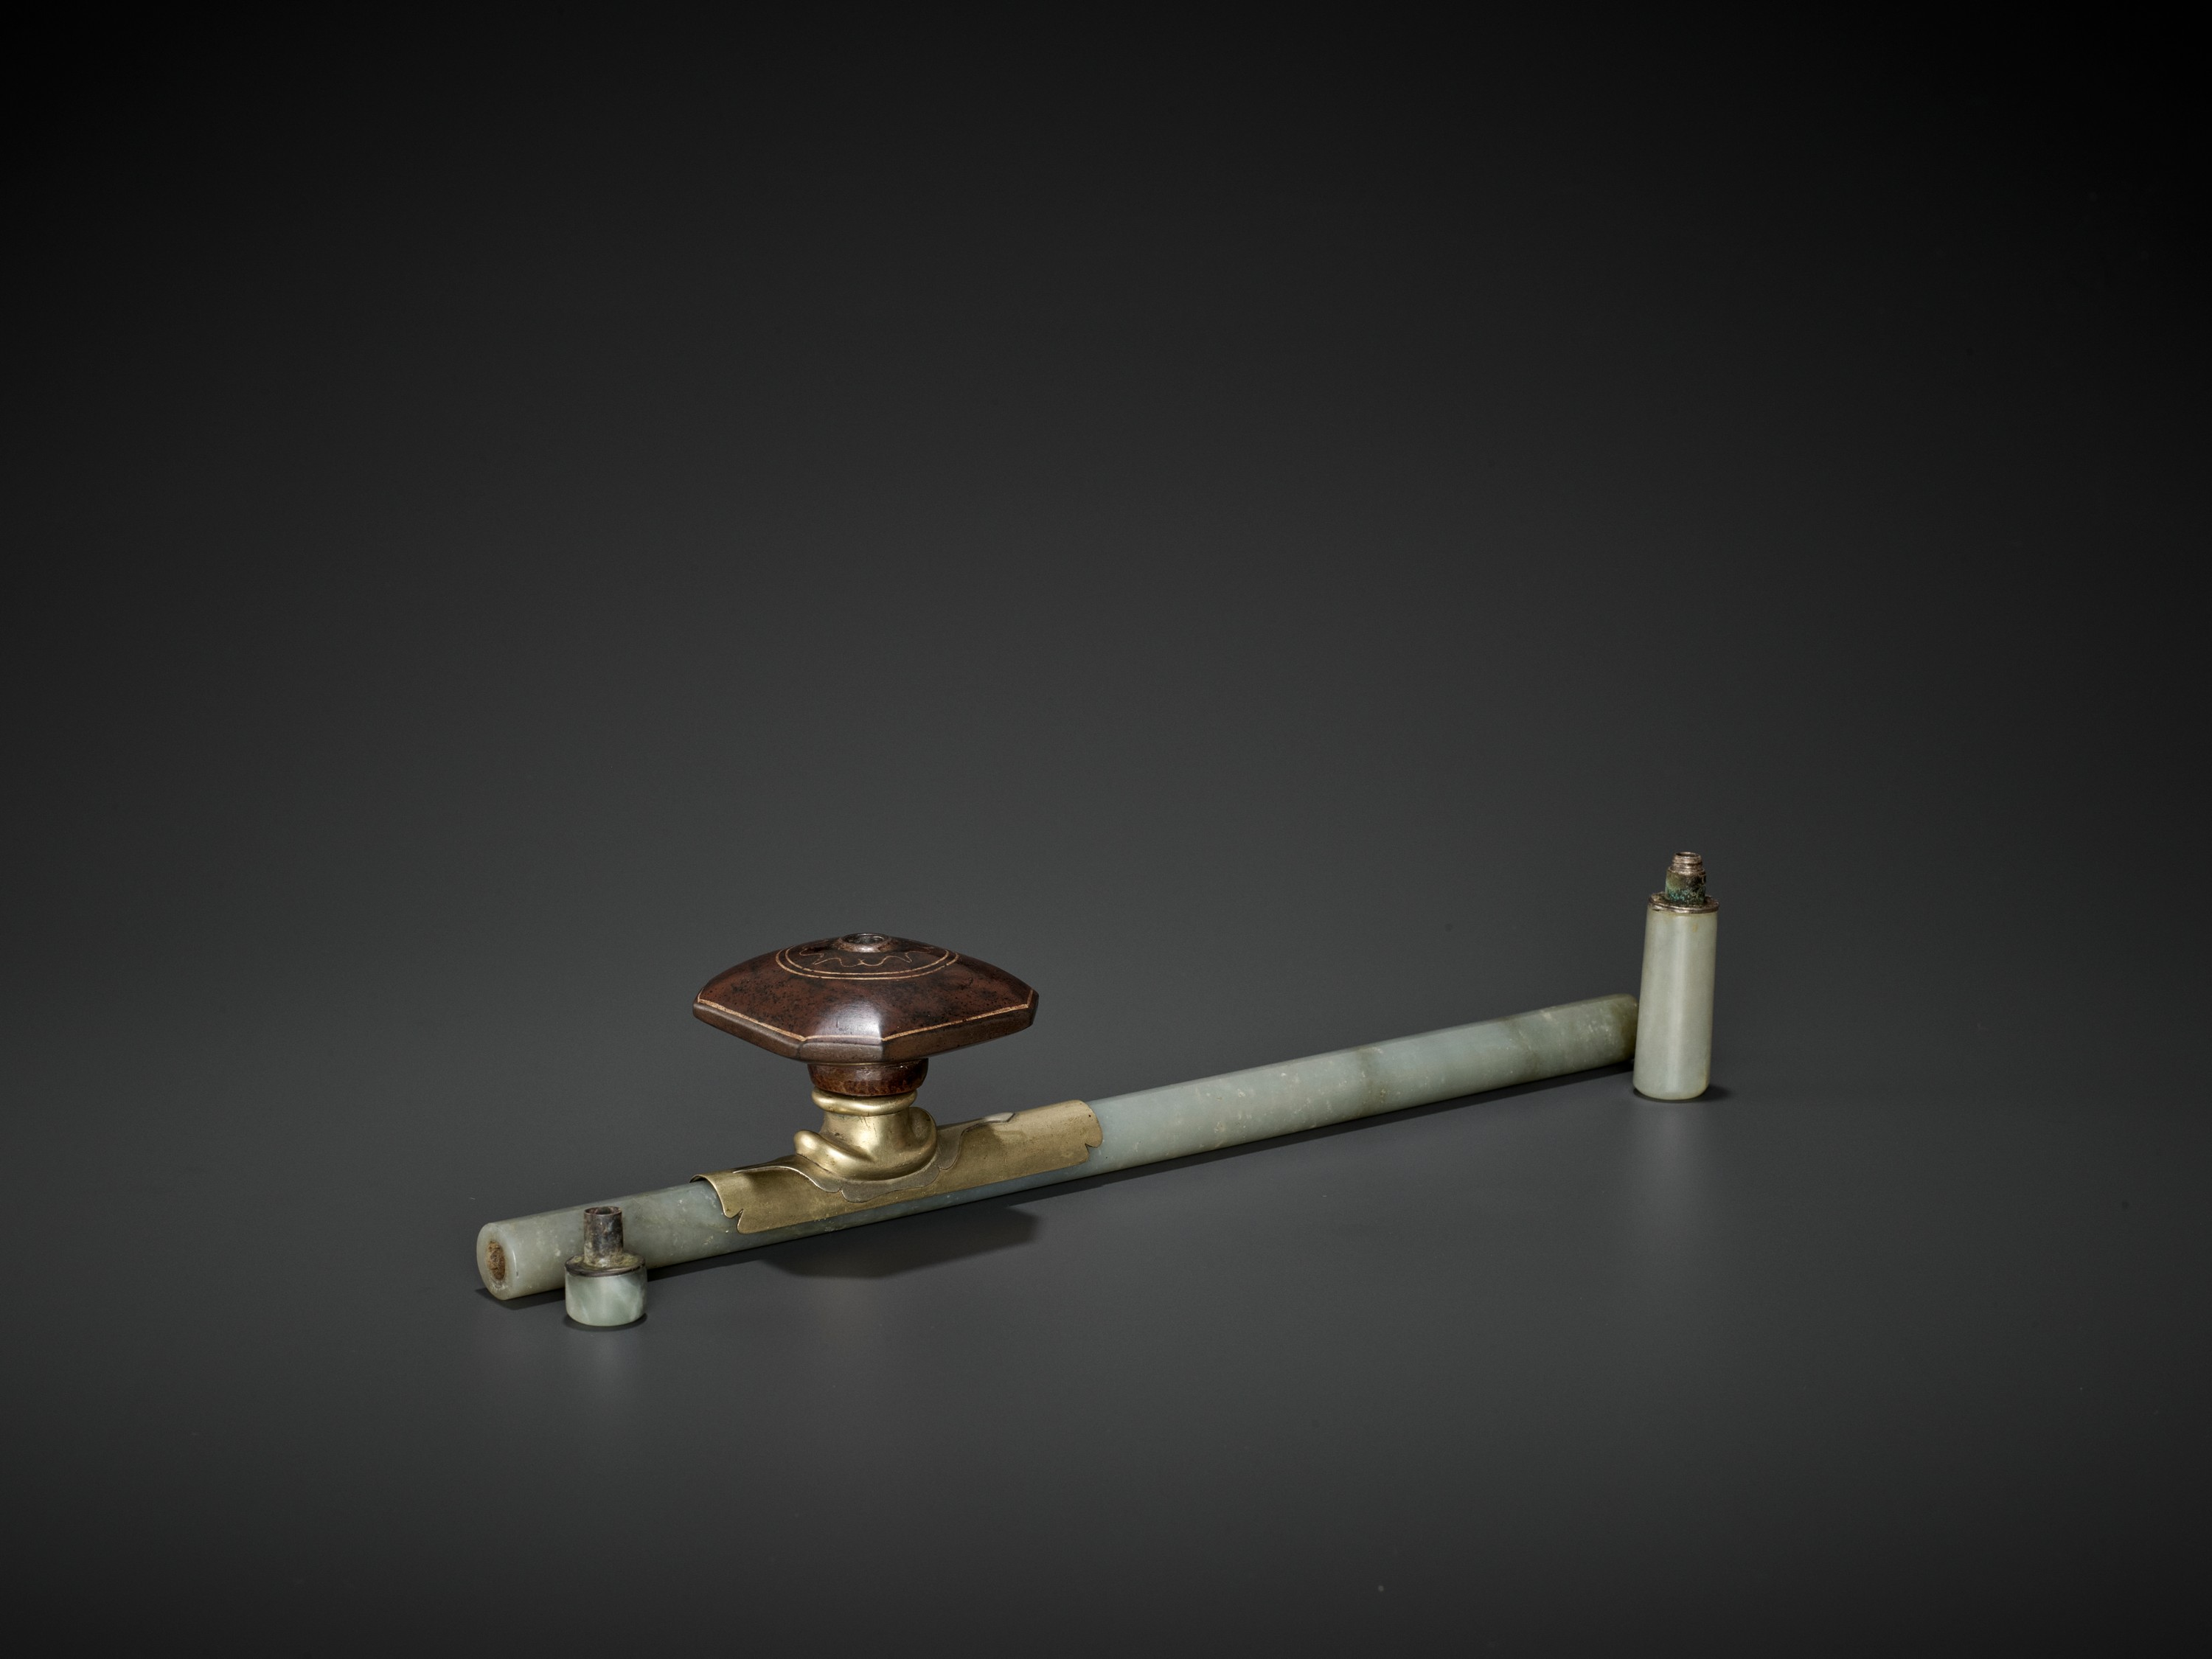 A JADE OPIUM PIPE, QING DYNASTY - Image 5 of 6